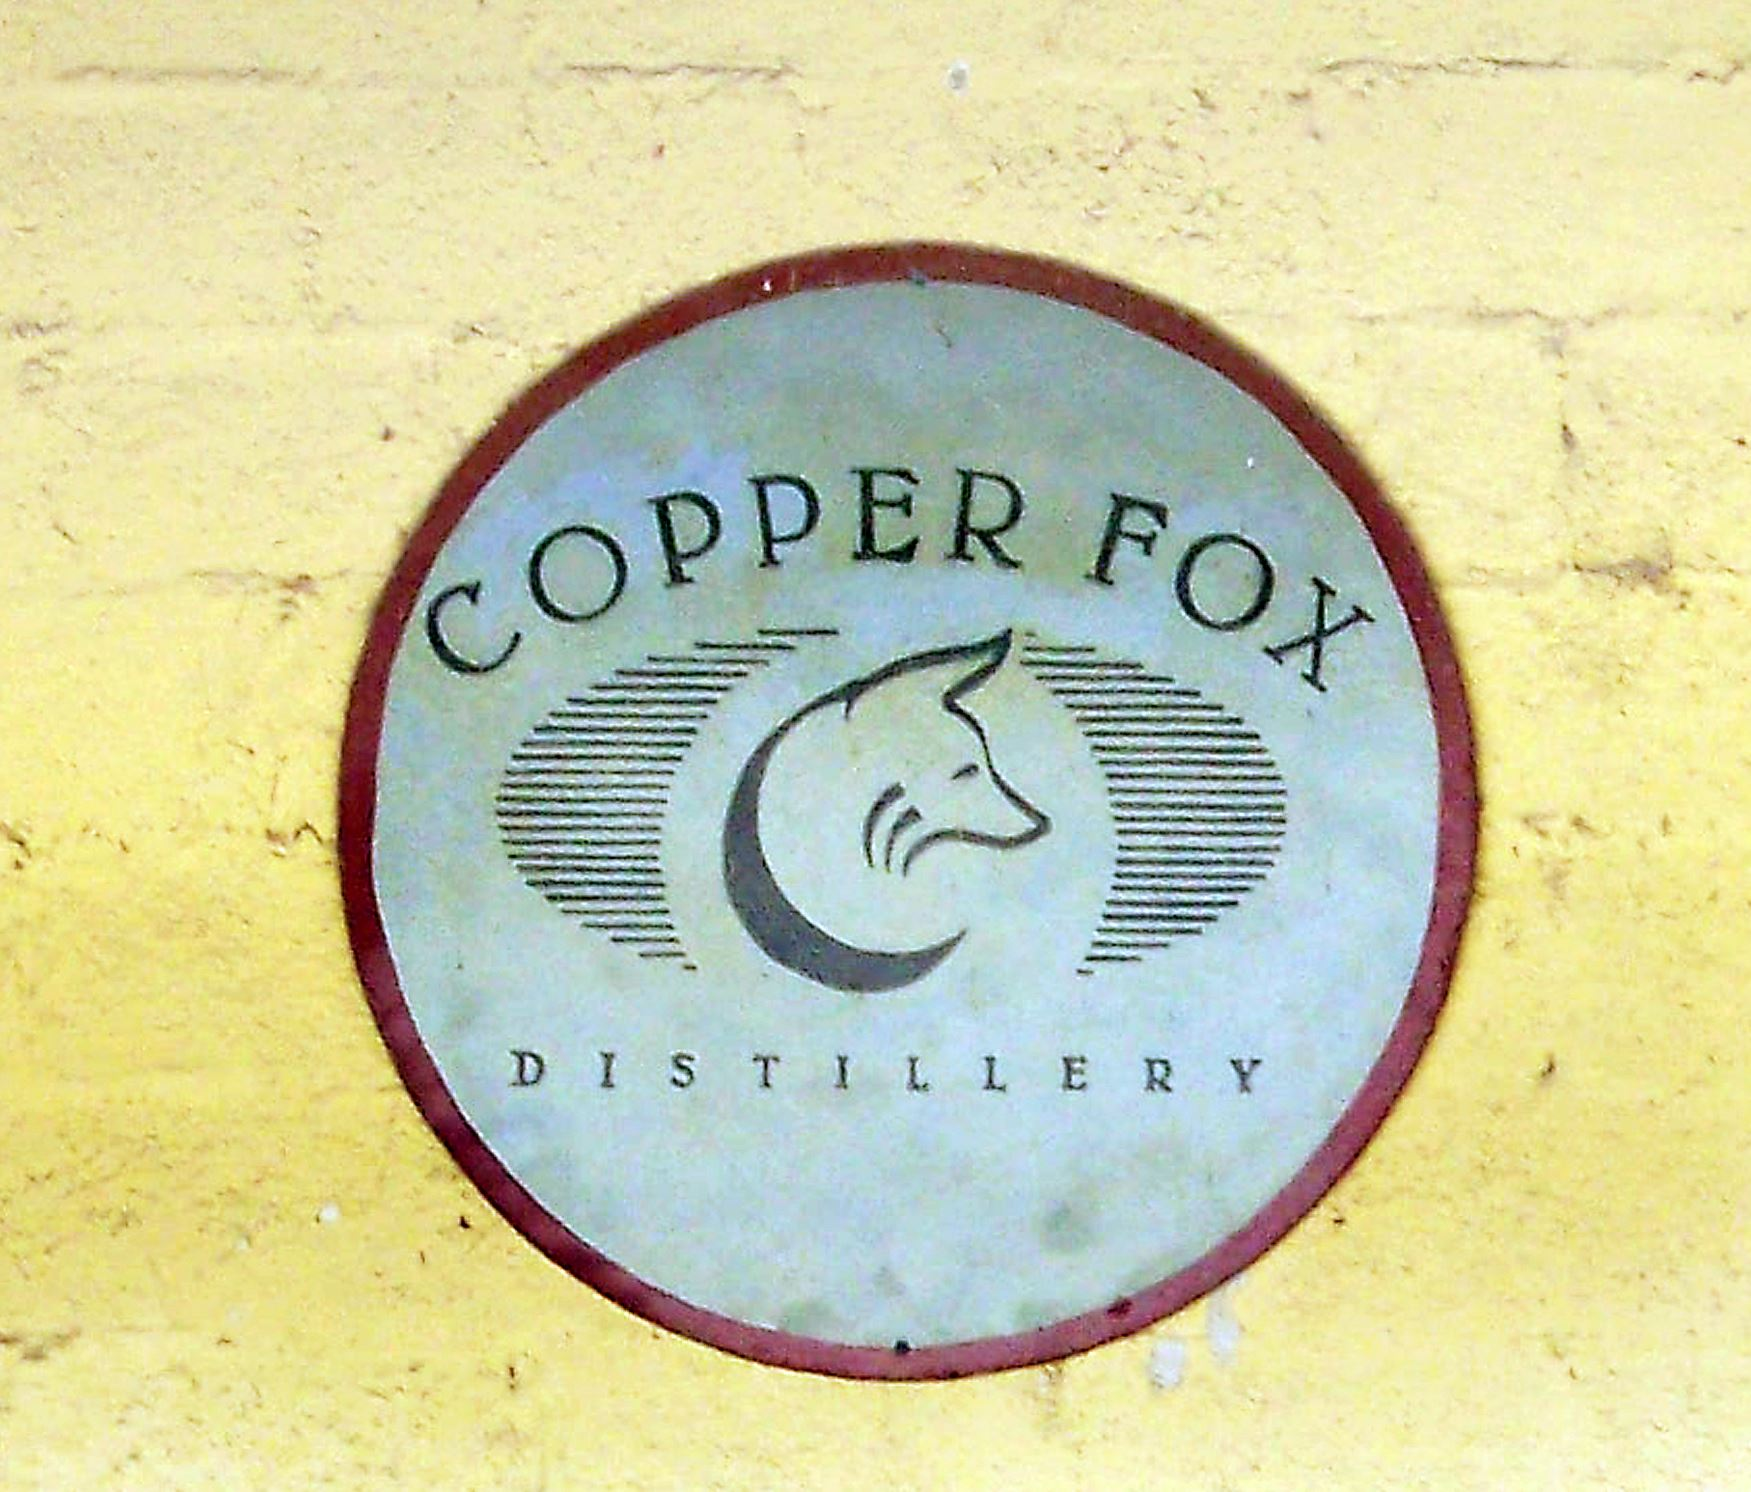 20140616hodistilleryAfood The Copper Fox Distillery in Sperryville, Va. .